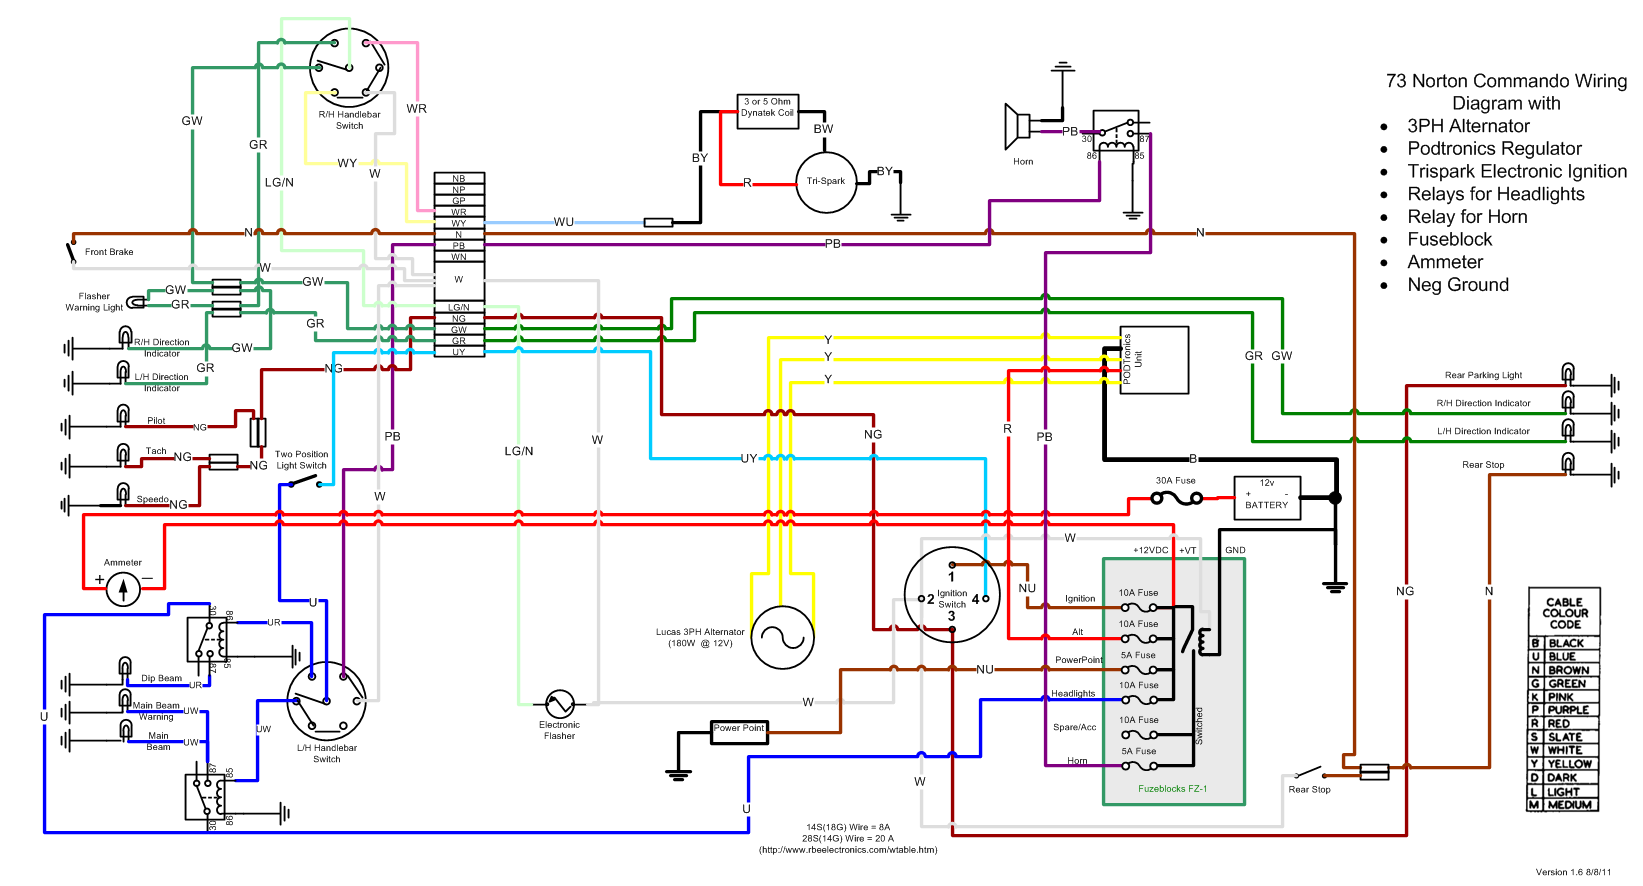 73wiringdiagram new wiring harness (negative ground) wire harness symbols at bayanpartner.co